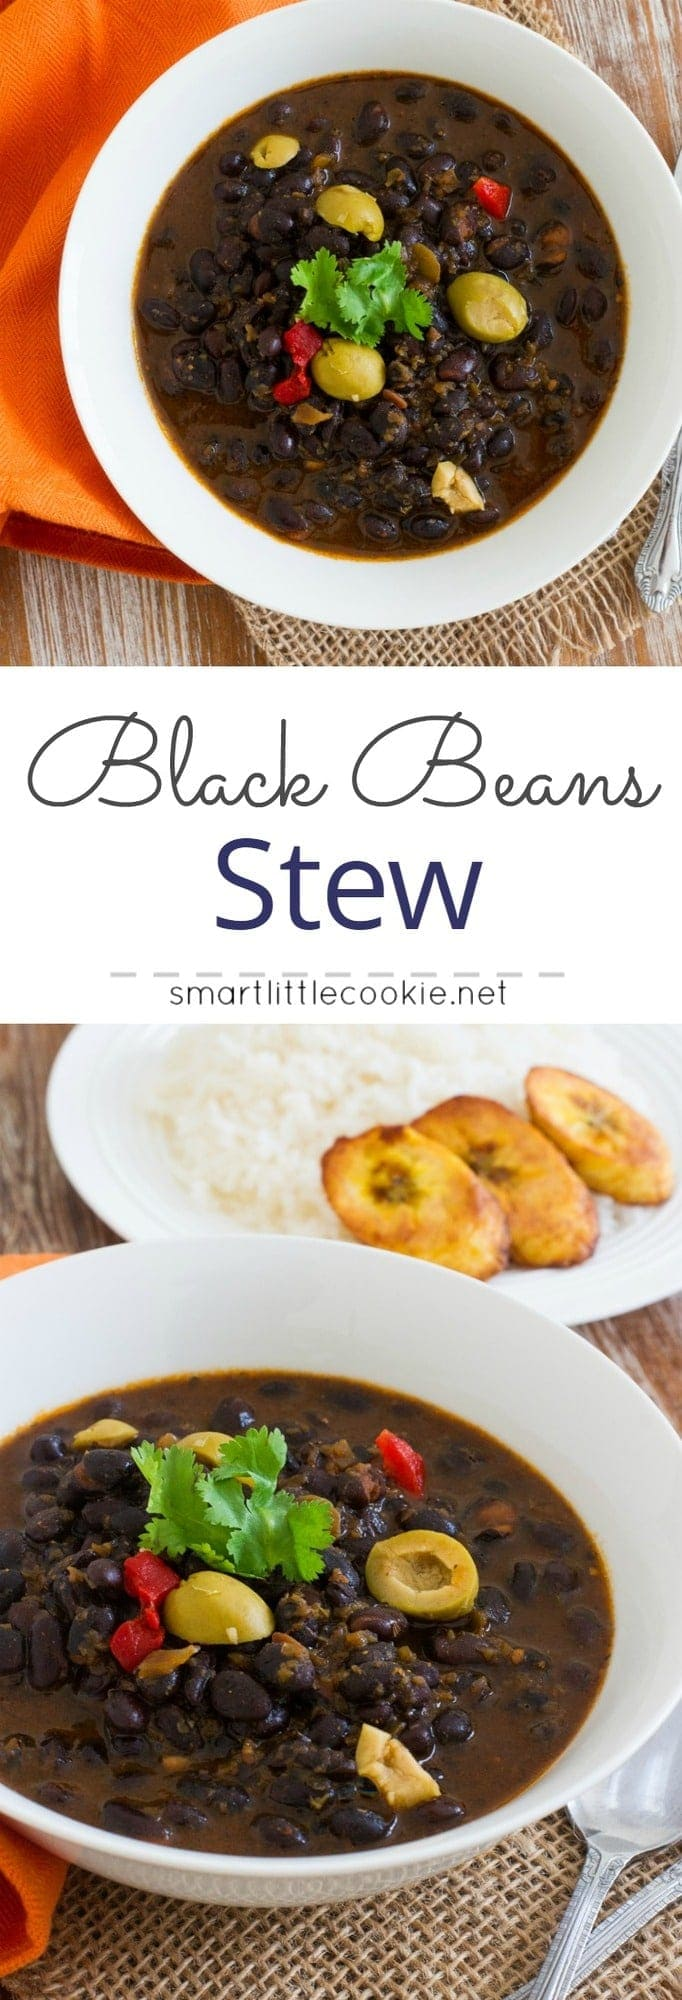 Pinterest graphic. Black bean stew with text overlay.